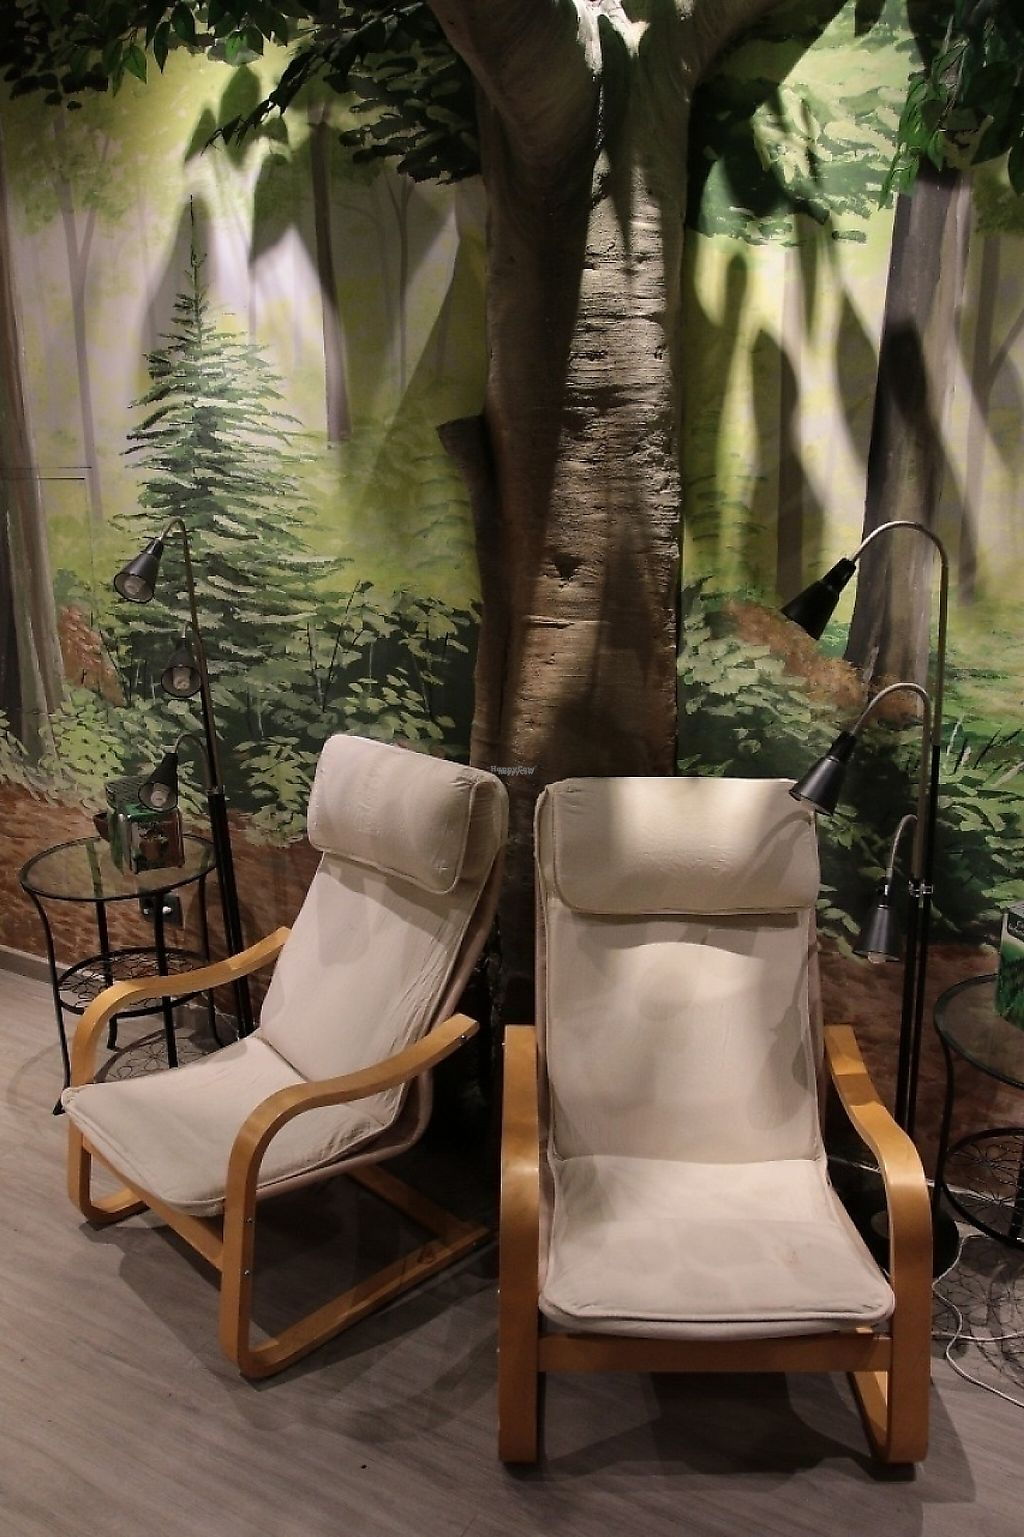 """Photo of CLOSED: Teteria El Bosque  by <a href=""""/members/profile/JorgeEscartin"""">JorgeEscartin</a> <br/>Couple of comfy chairs to sit back and relax. A good tea, a good book, or maybe a quick nap after lunch <br/> November 9, 2016  - <a href='/contact/abuse/image/71554/187631'>Report</a>"""